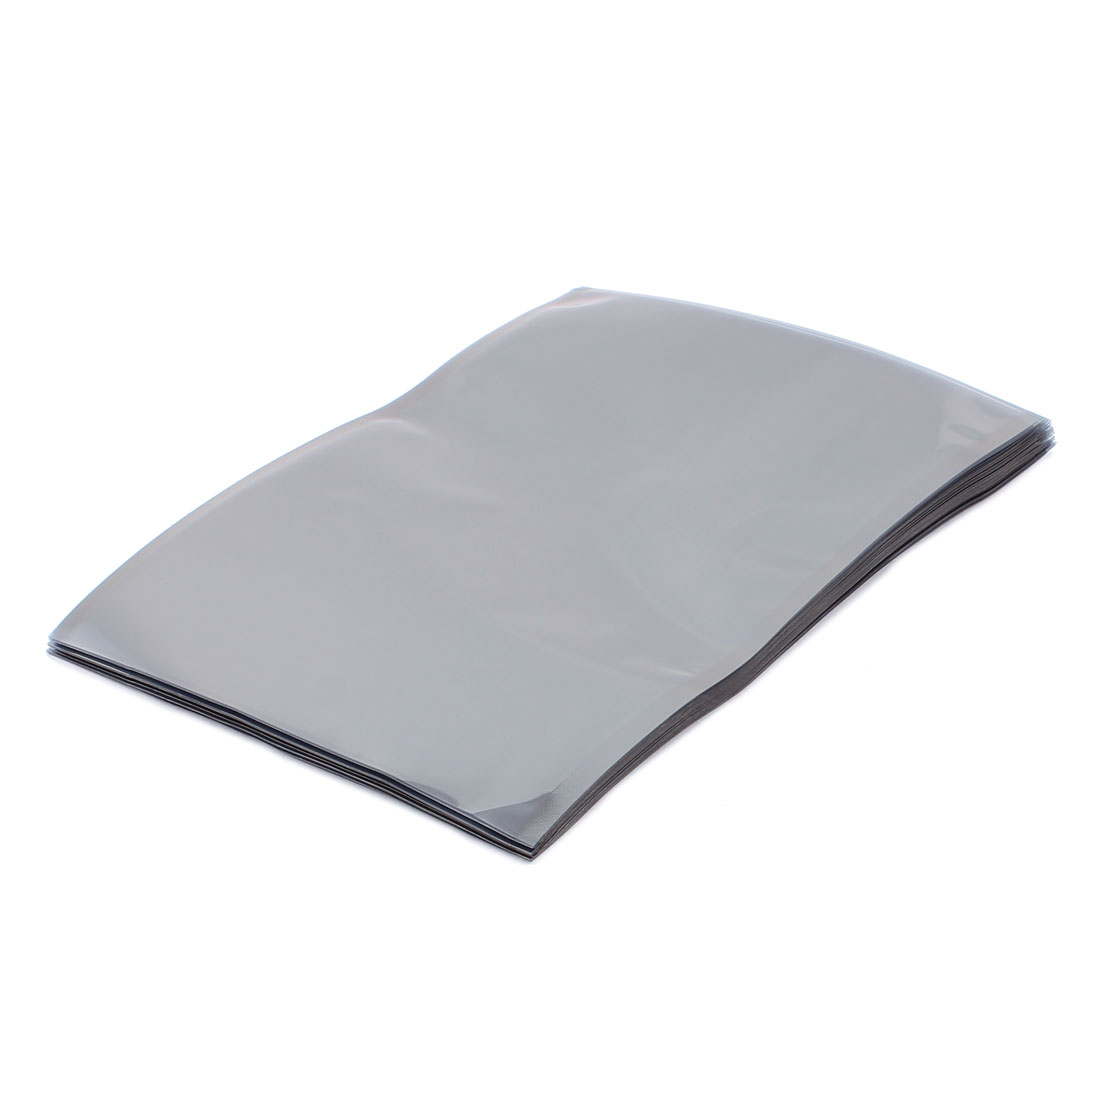 50 Pcs 150mm x 200mm Silver Tone Flat Open Top Anti Static Bag For Electronics